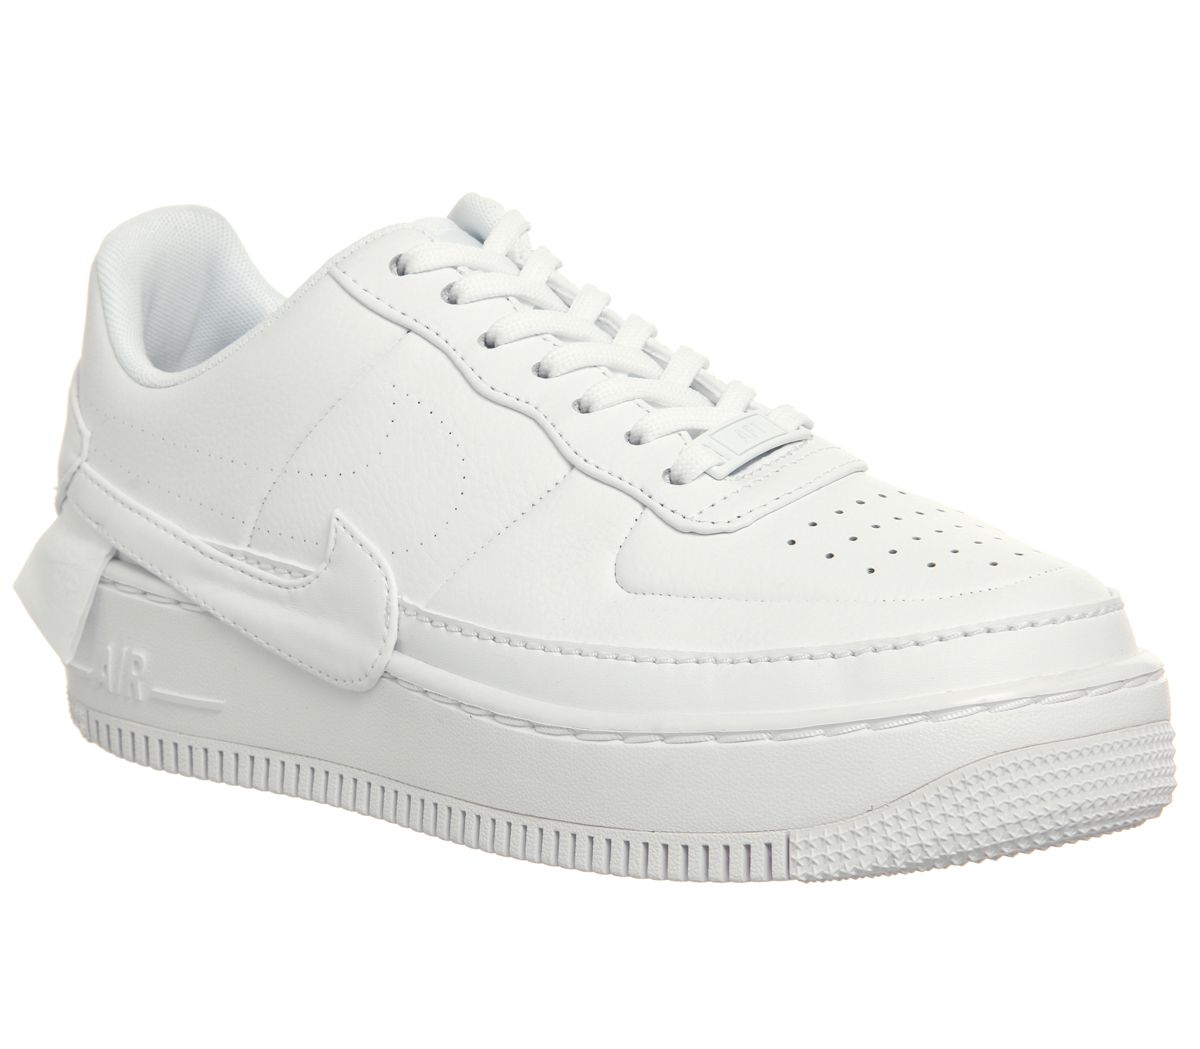 b77748abd017 Nike AF1 Jester XX Trainers White - Hers trainers